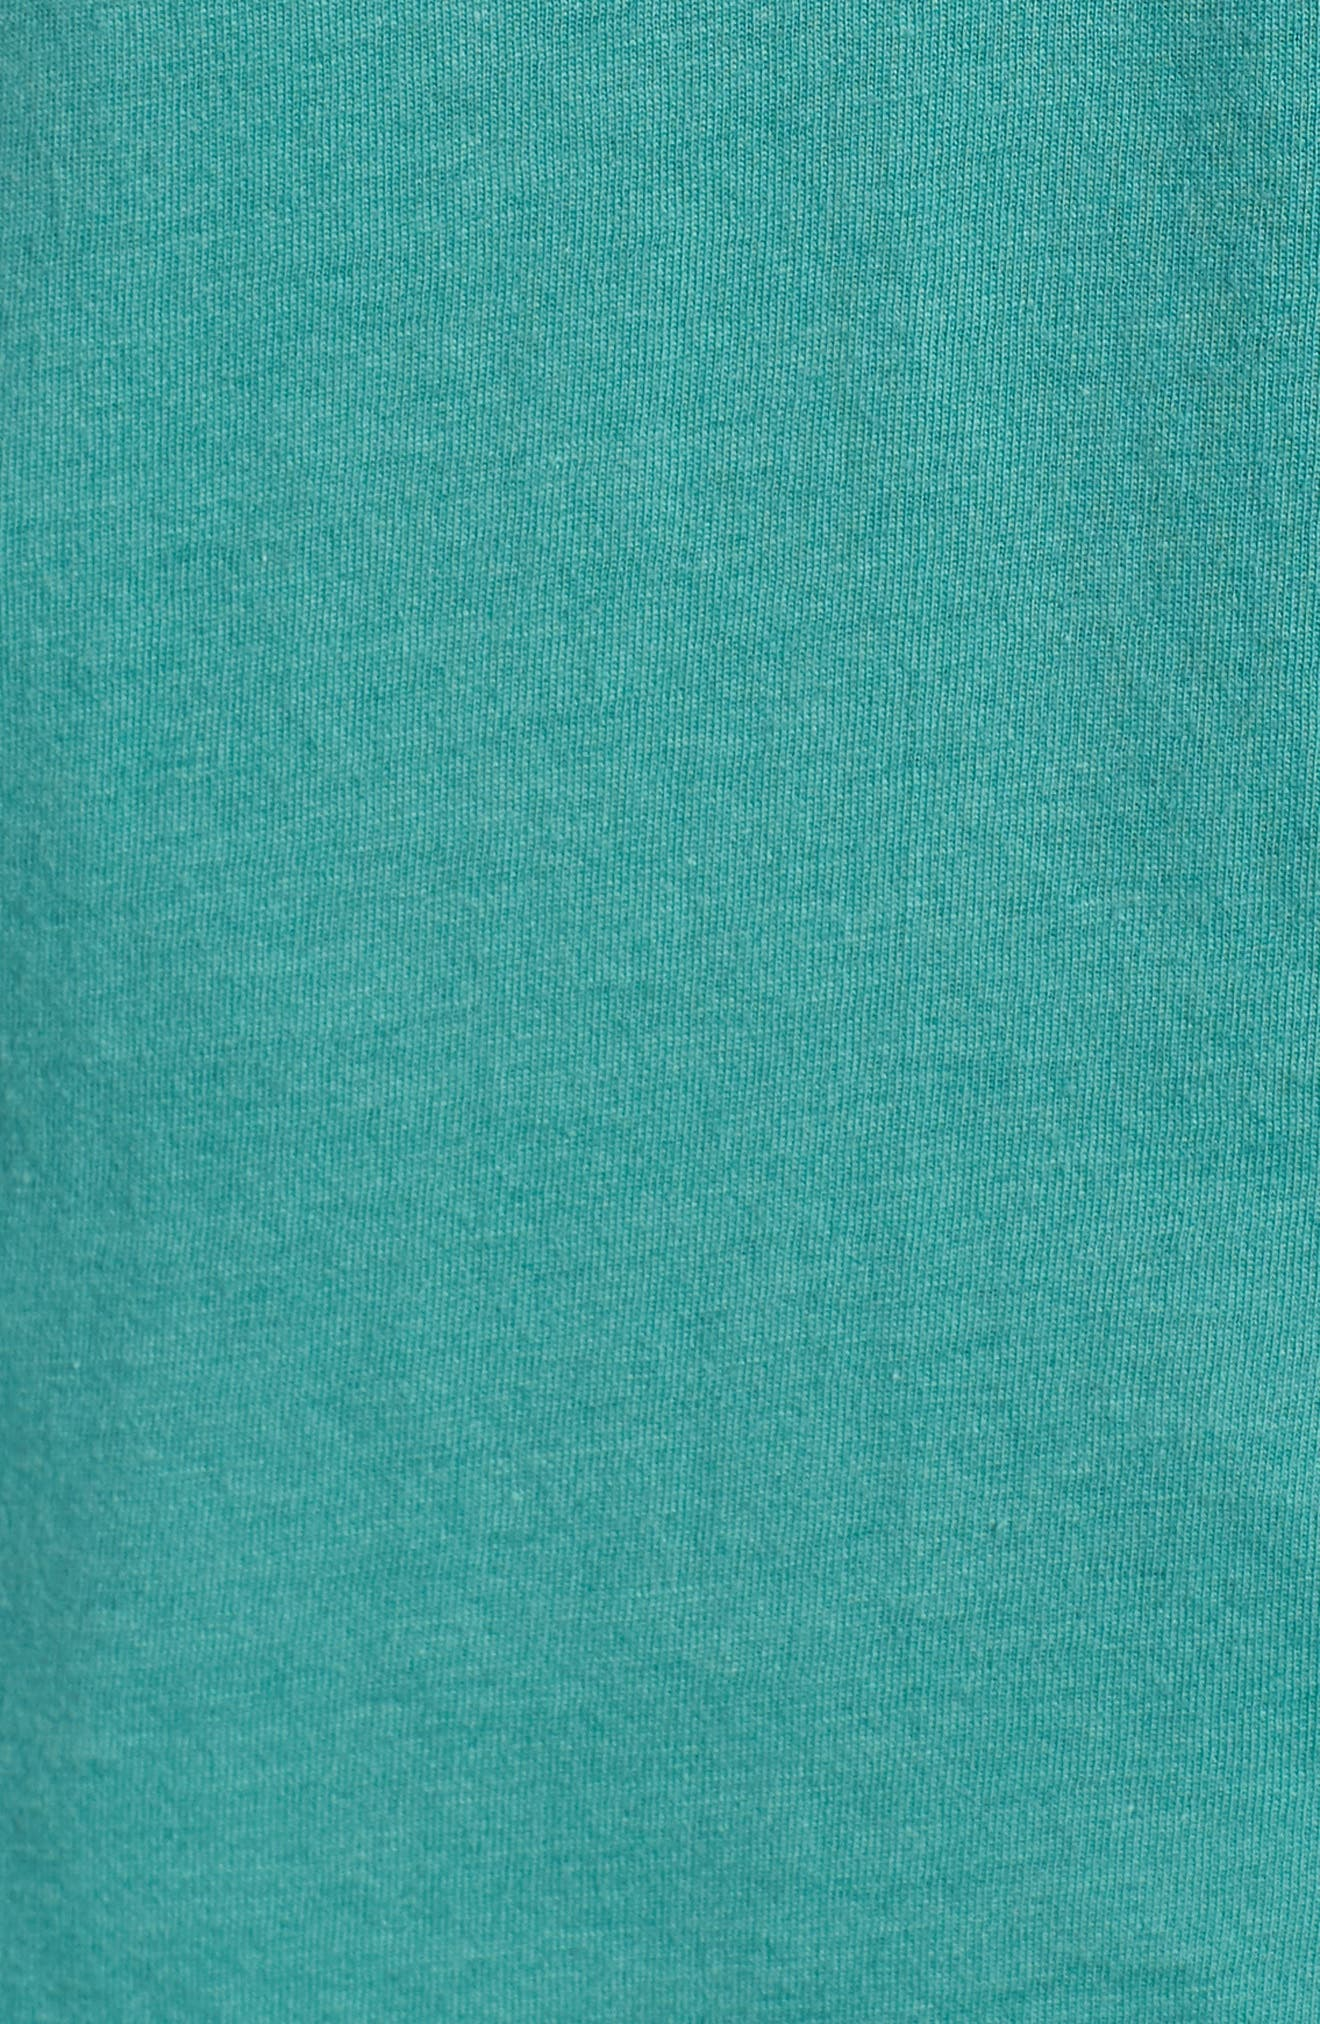 Up & Out Graphic Organic Cotton T-Shirt,                             Alternate thumbnail 5, color,                             Beryl Green